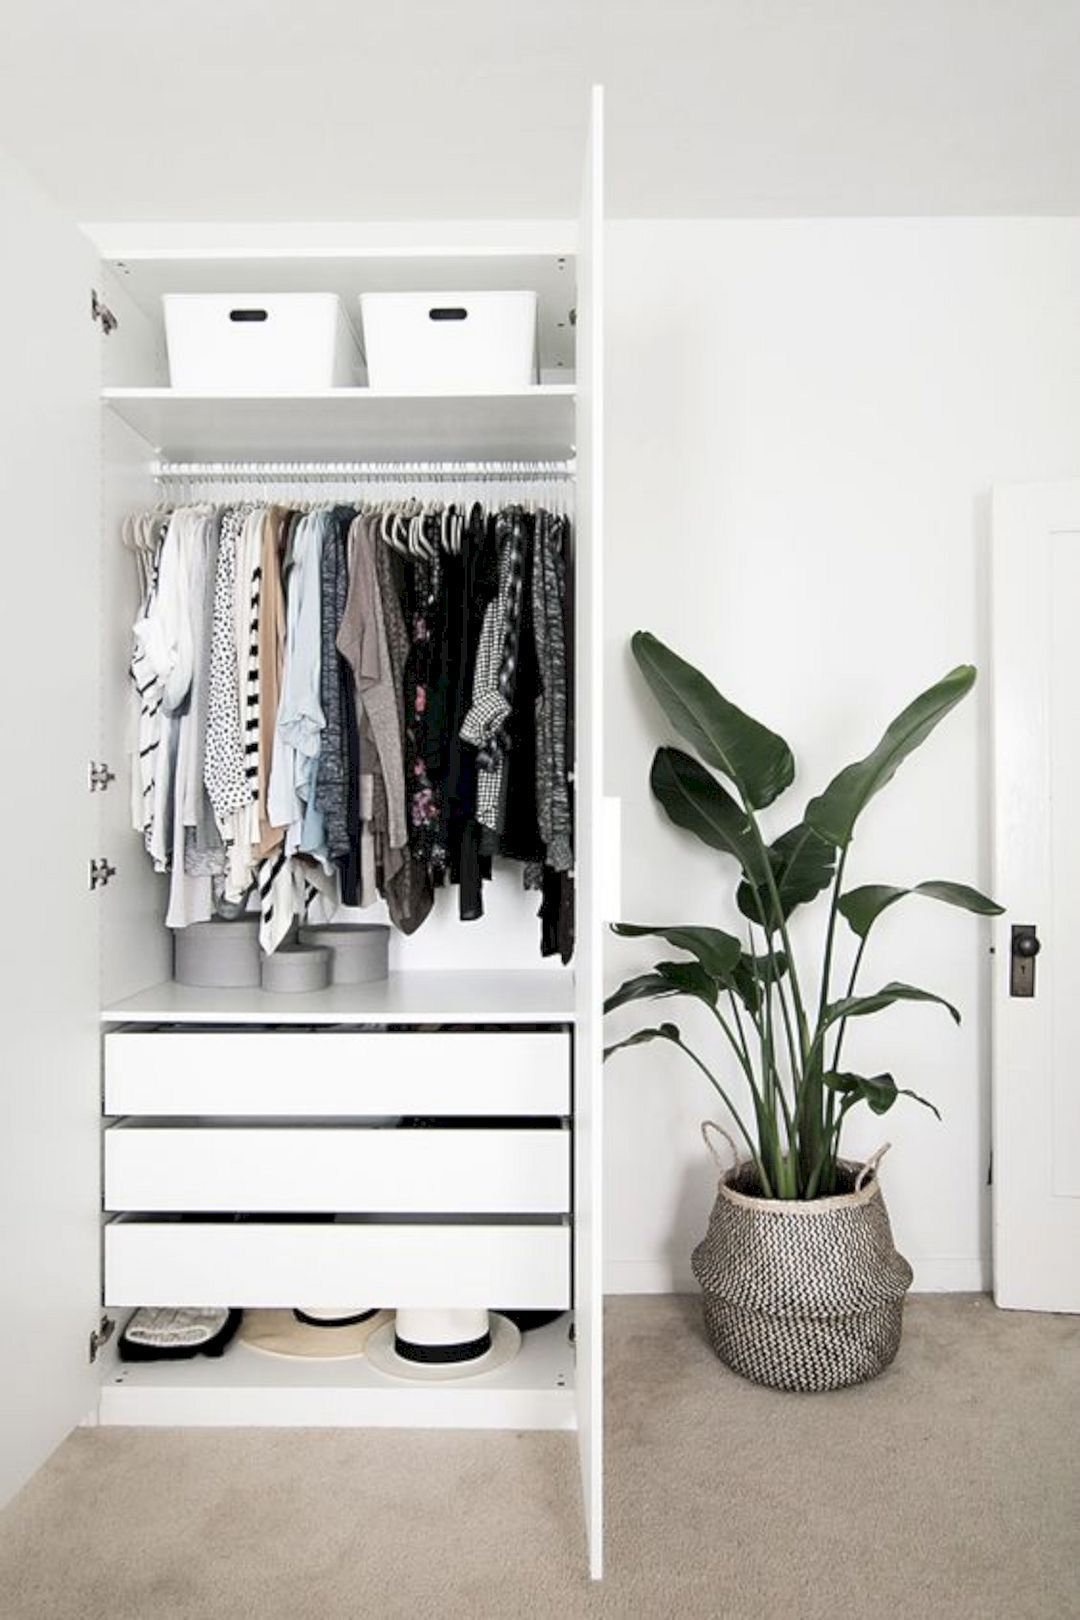 15 Gorgeous Wardrobe Storage Ideas Small Space Bedroom Minimalist Room Bedroom Storage